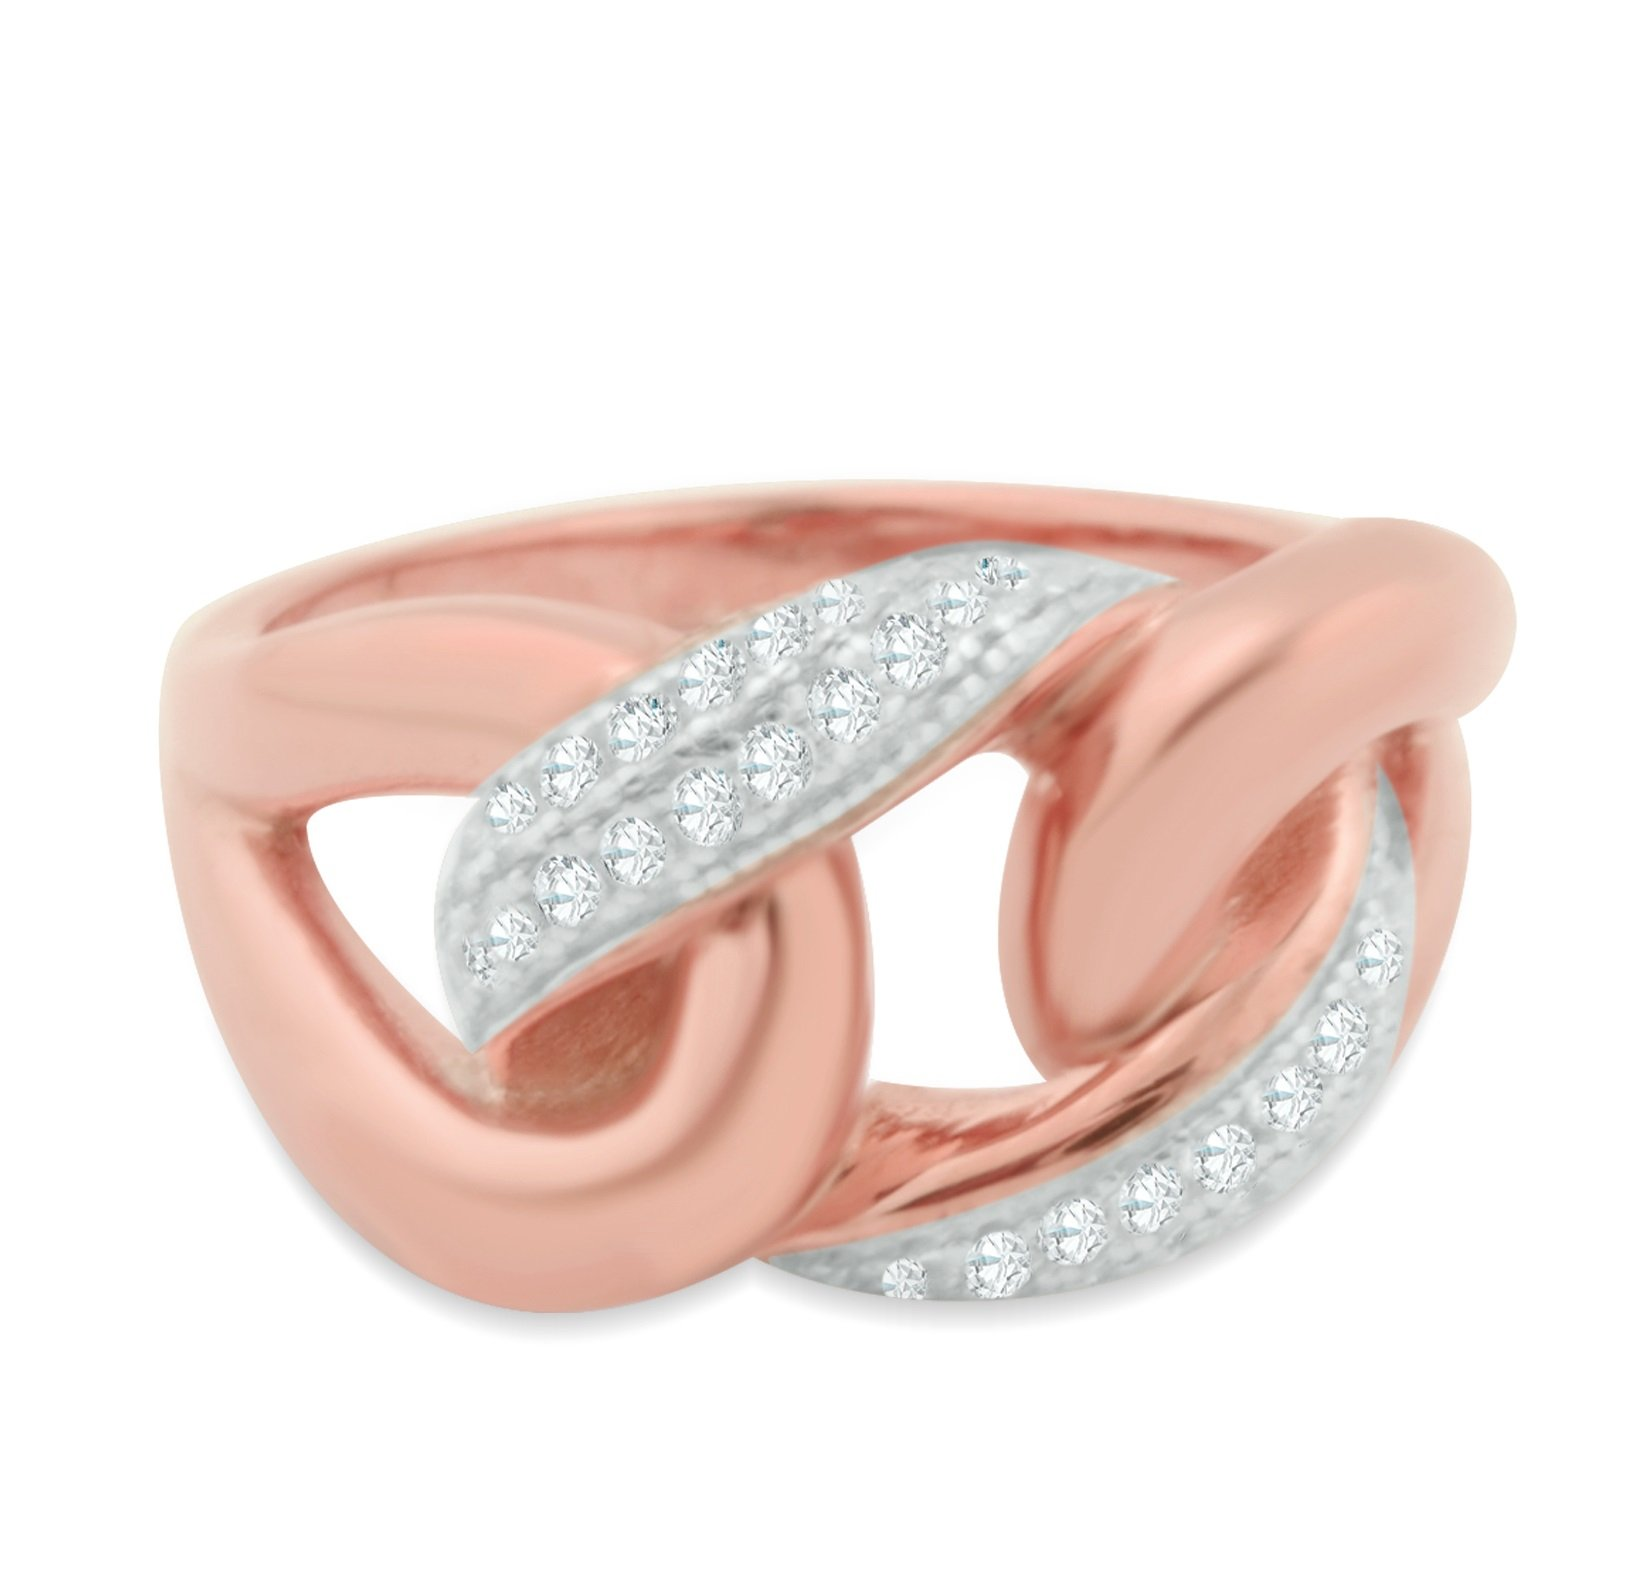 Midwest Jewellery Rose Gold-Tone Statement Ring Anniversary Fashoin Ring With White CZ Couture Style